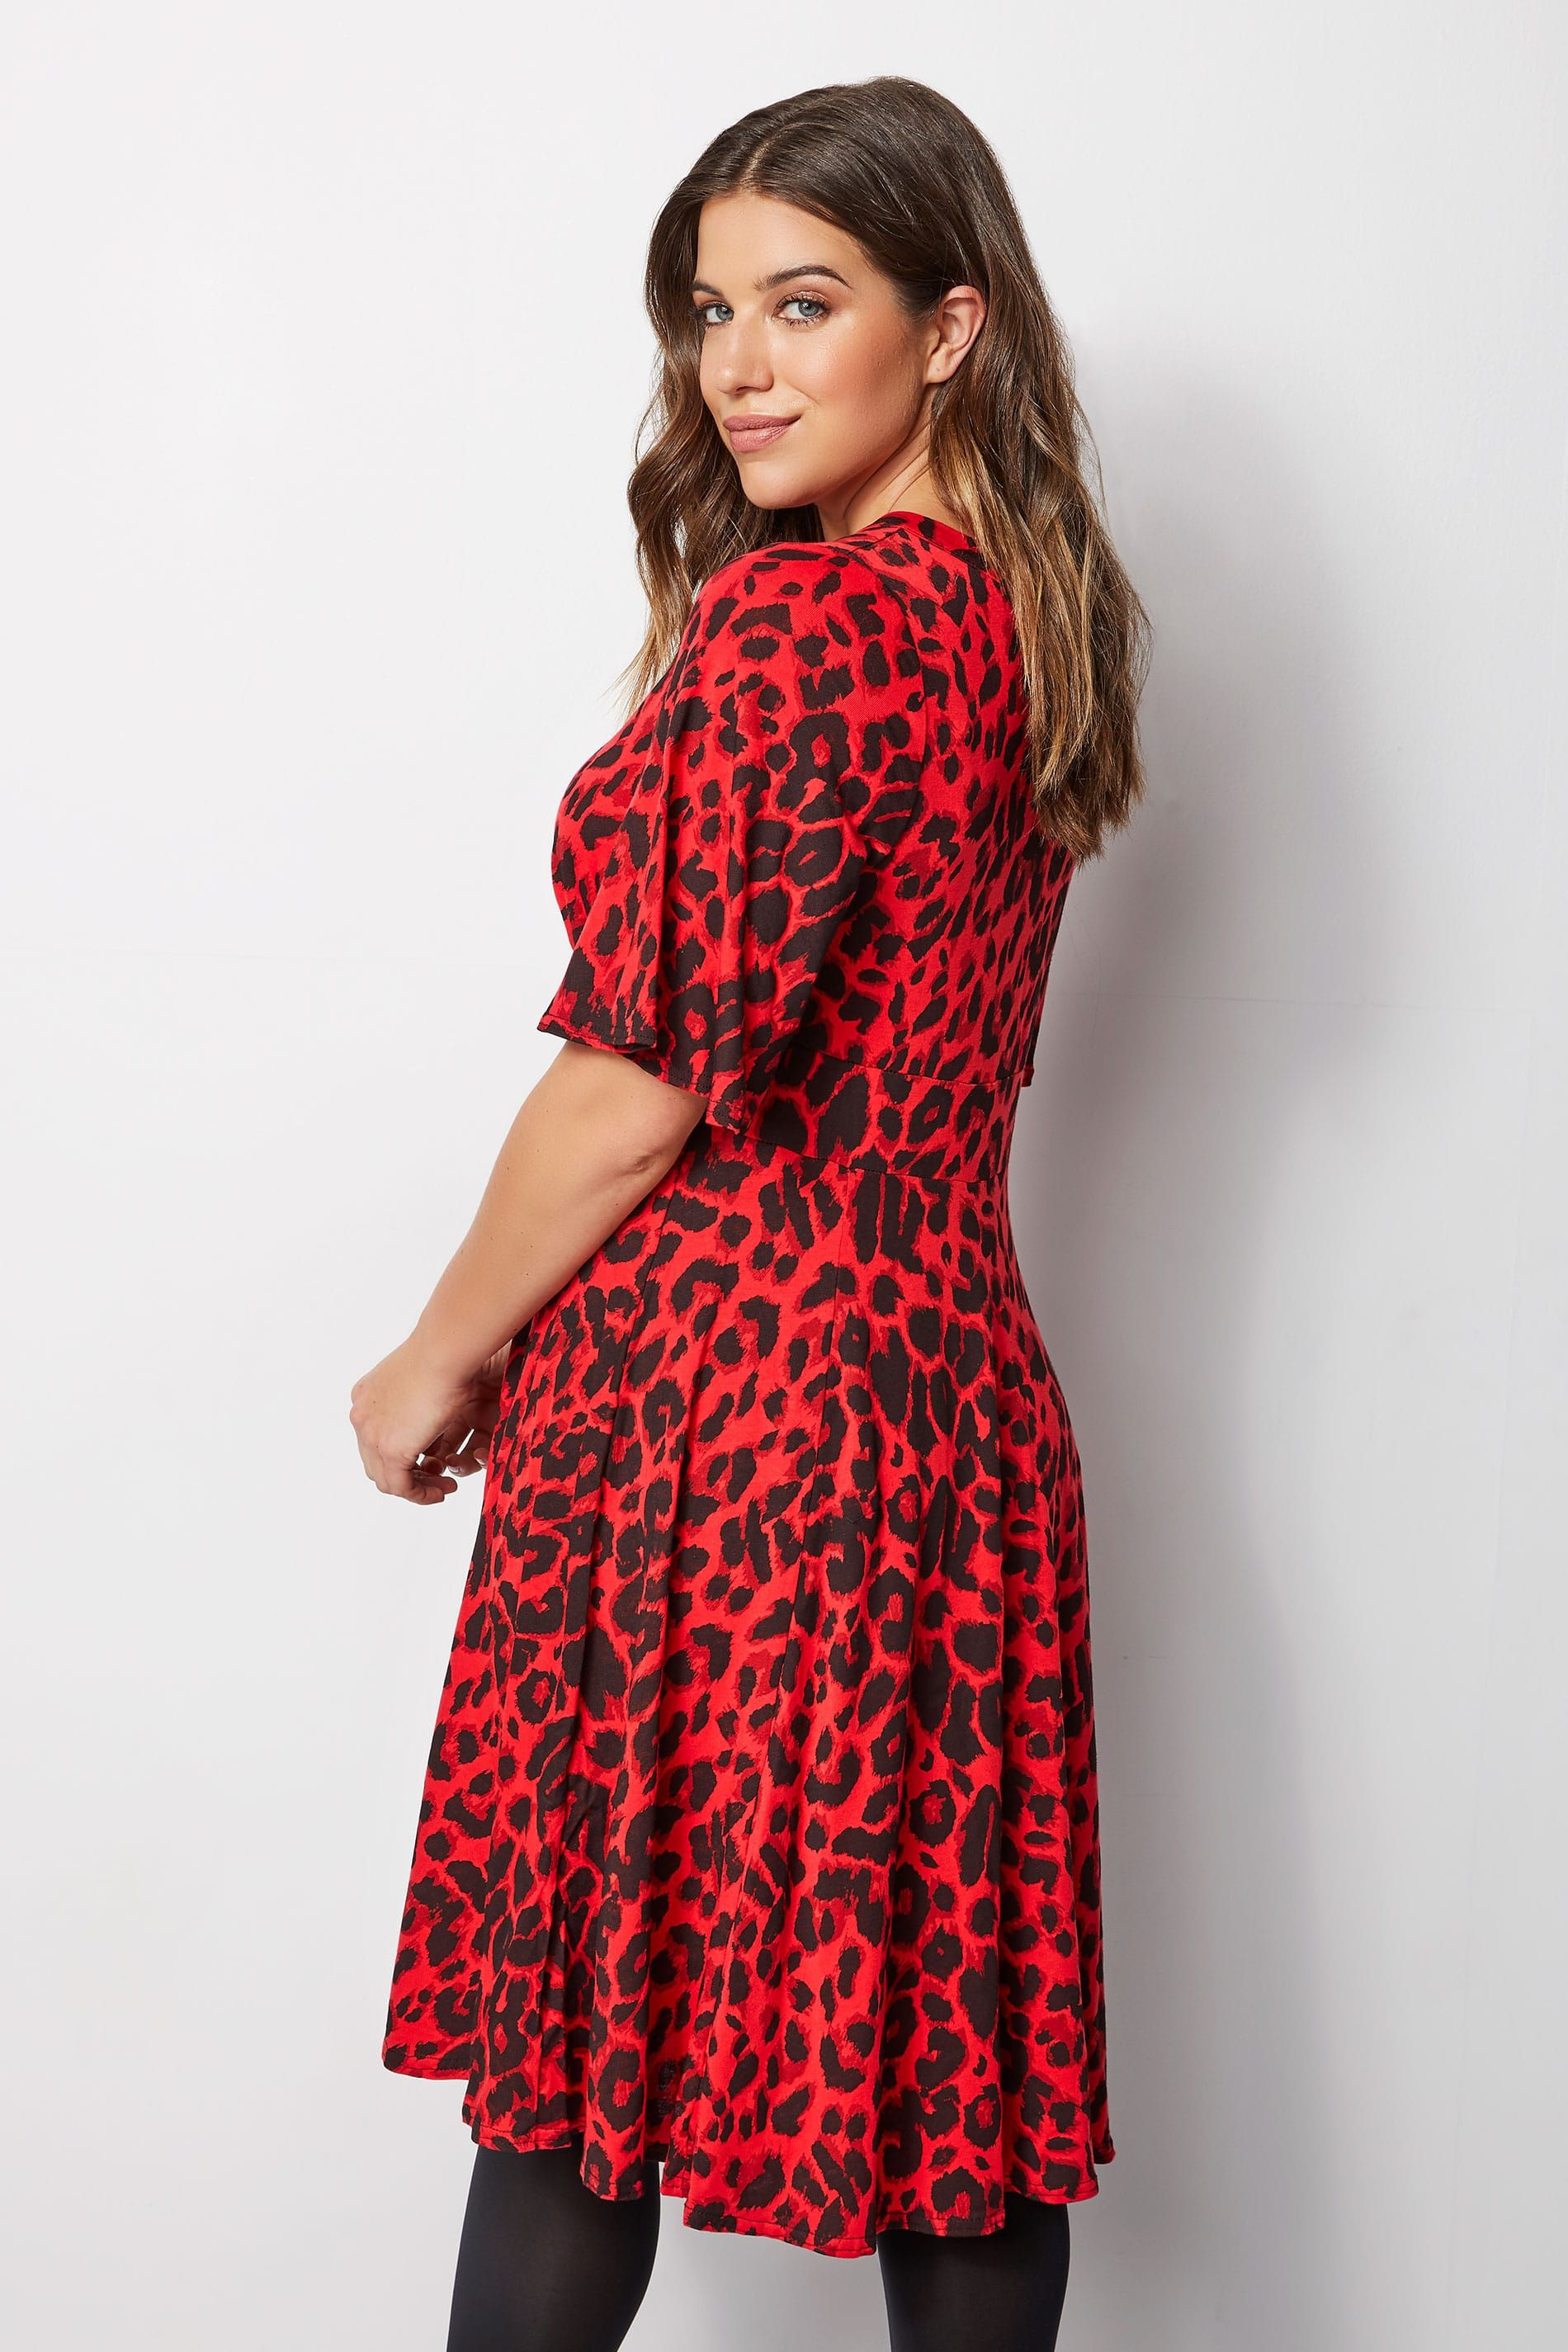 1a7fdb9598e4 Red Leopard Print Midi Dress in 2019 | Yours Clothing | Red leopard ...